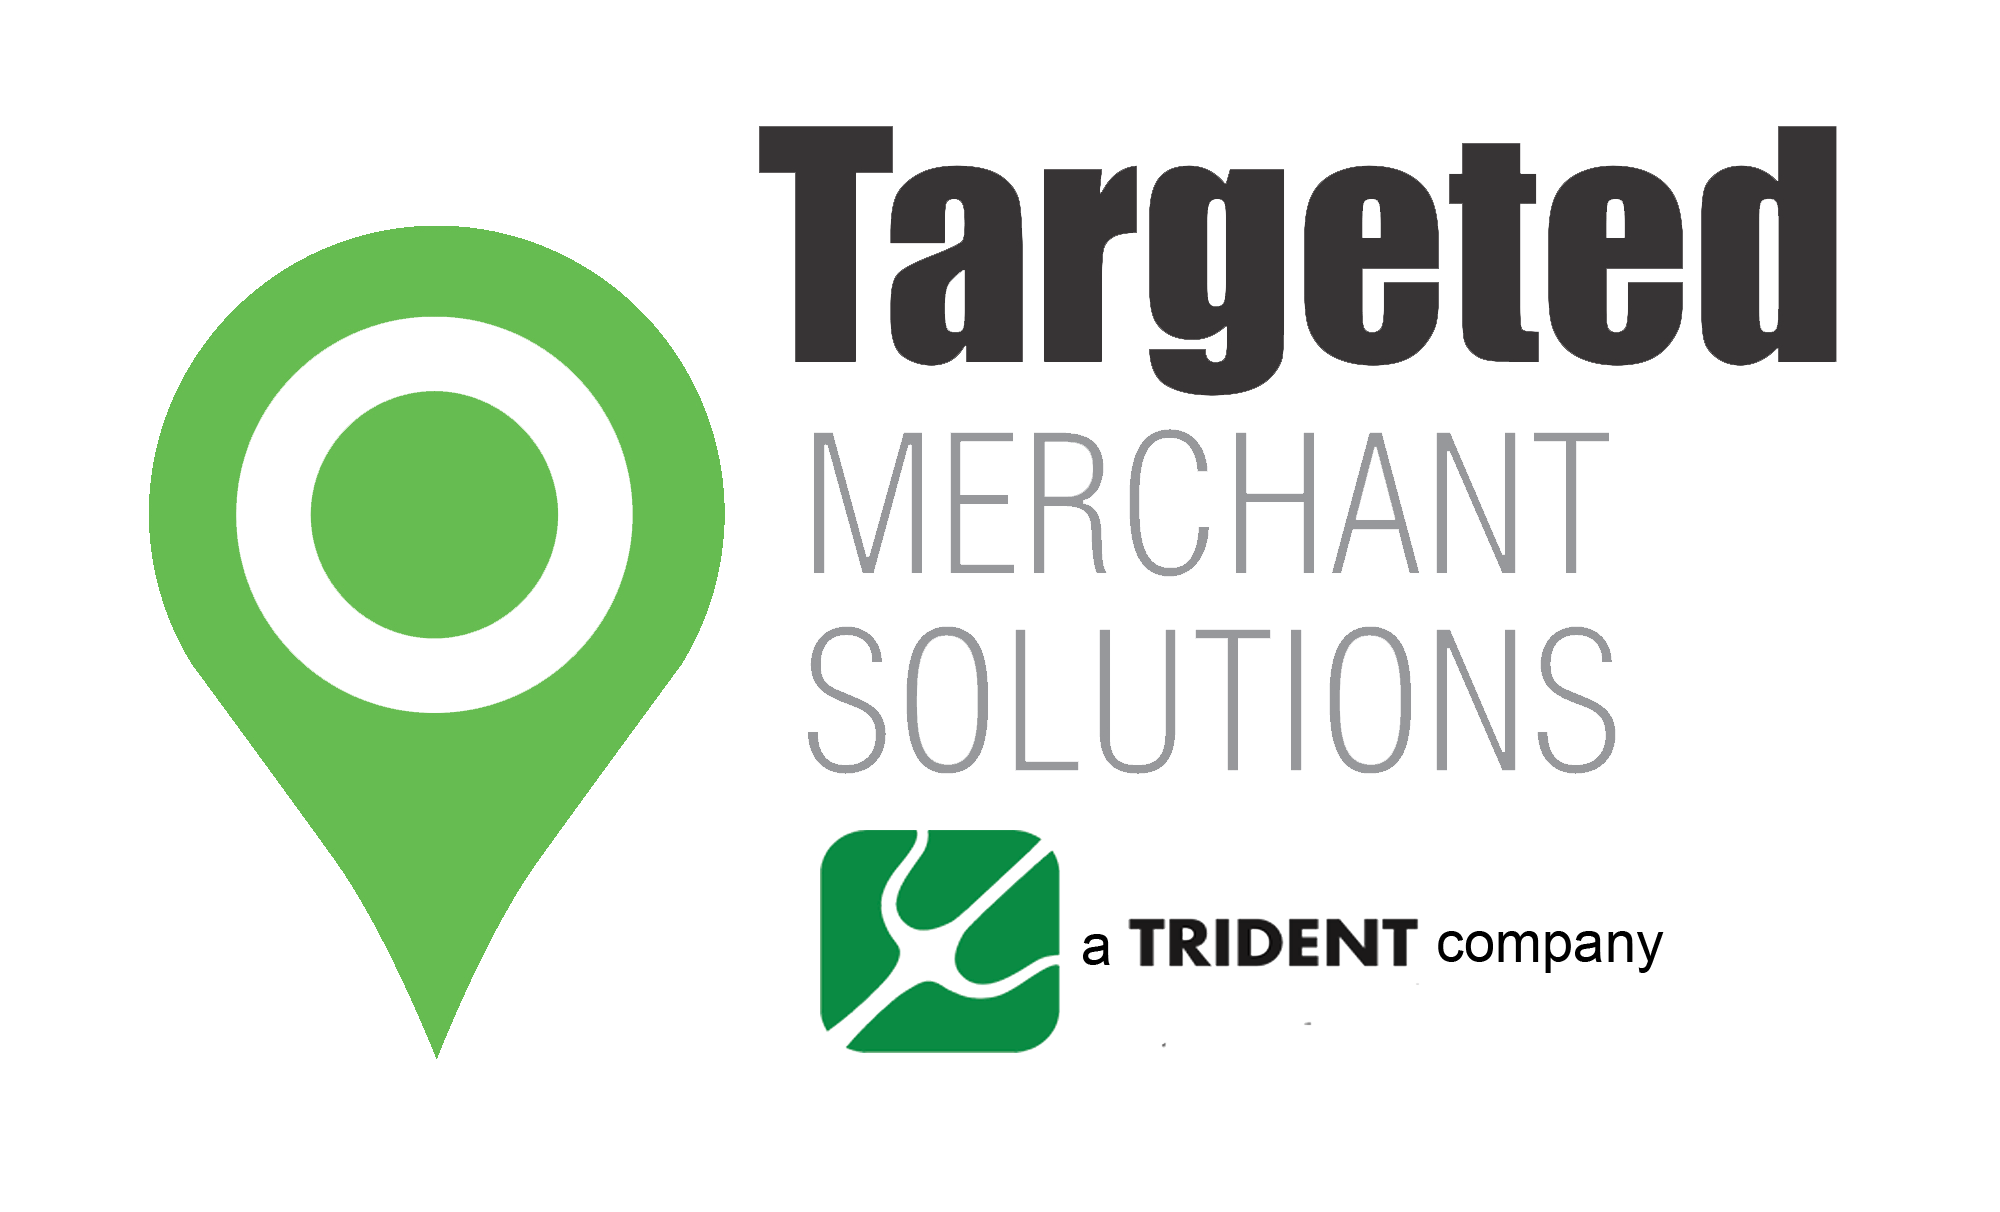 Targeted Merchant Solutions